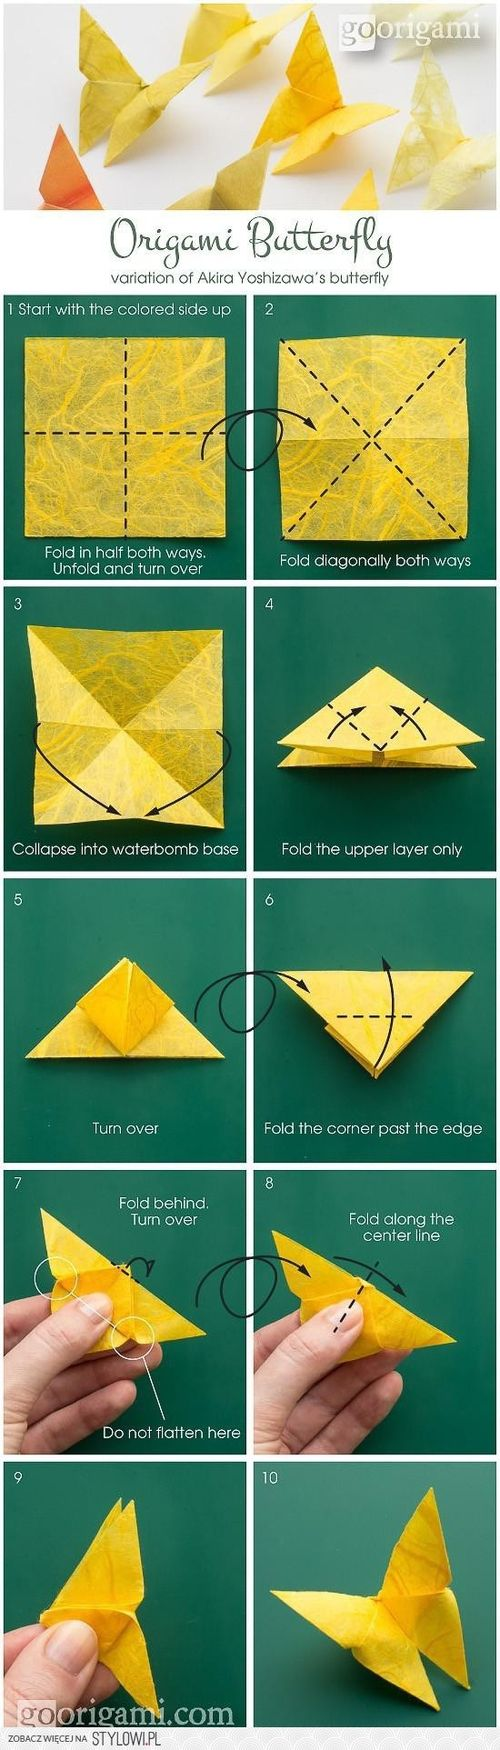 origami butterfly /papillon